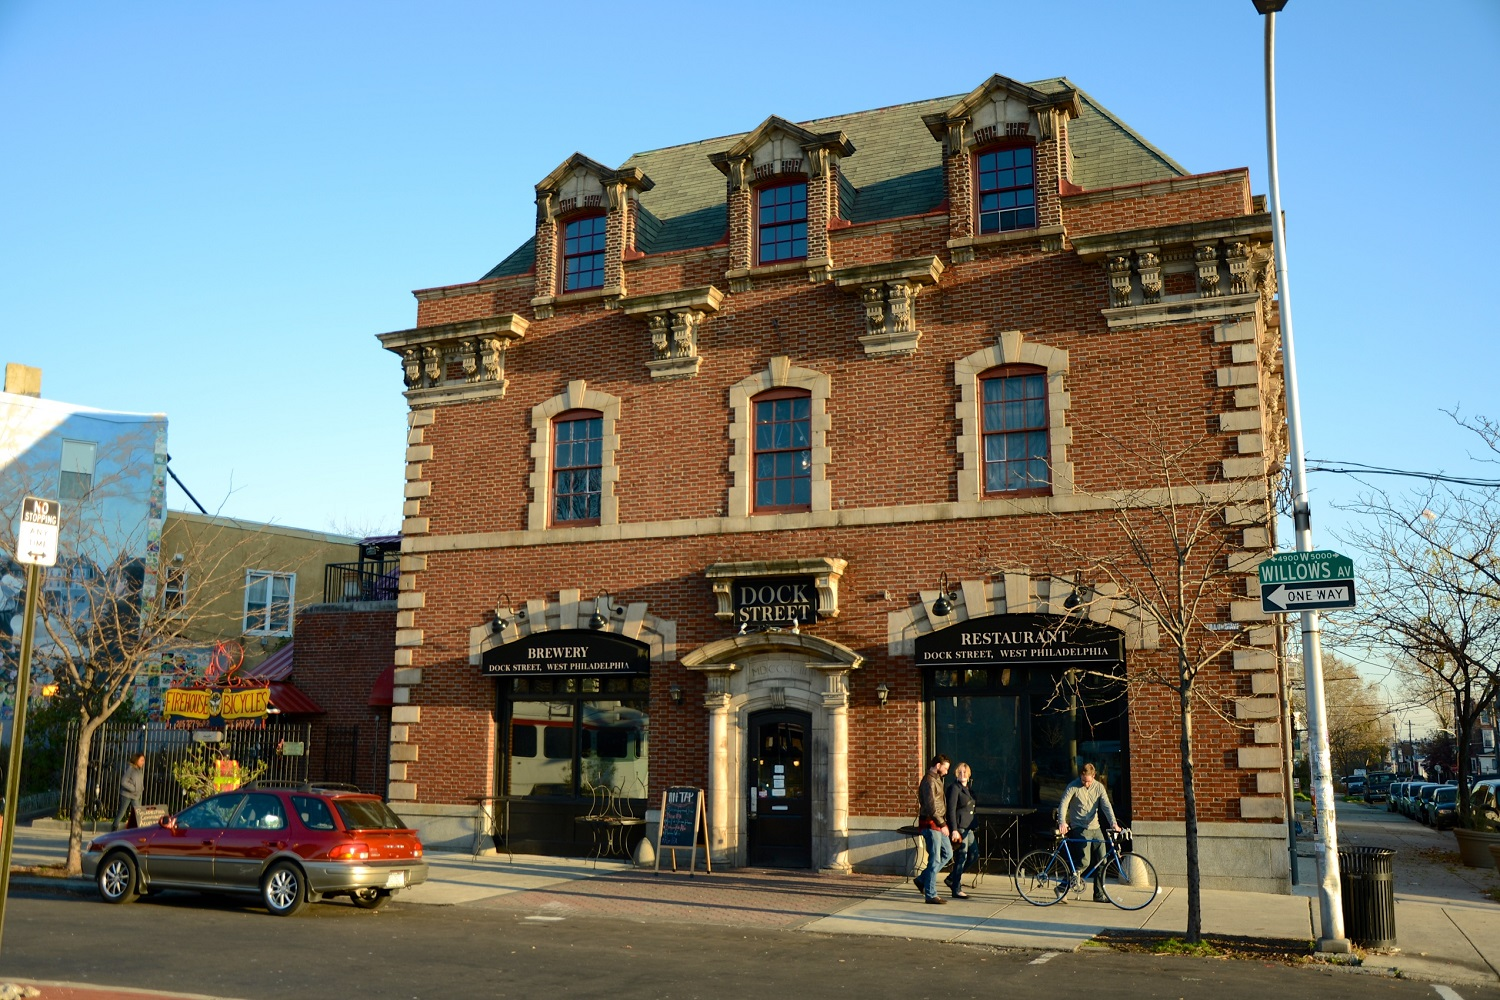 Dock Street Brewing in the University City Neighborhood of Philadelphia, Pennsylvania